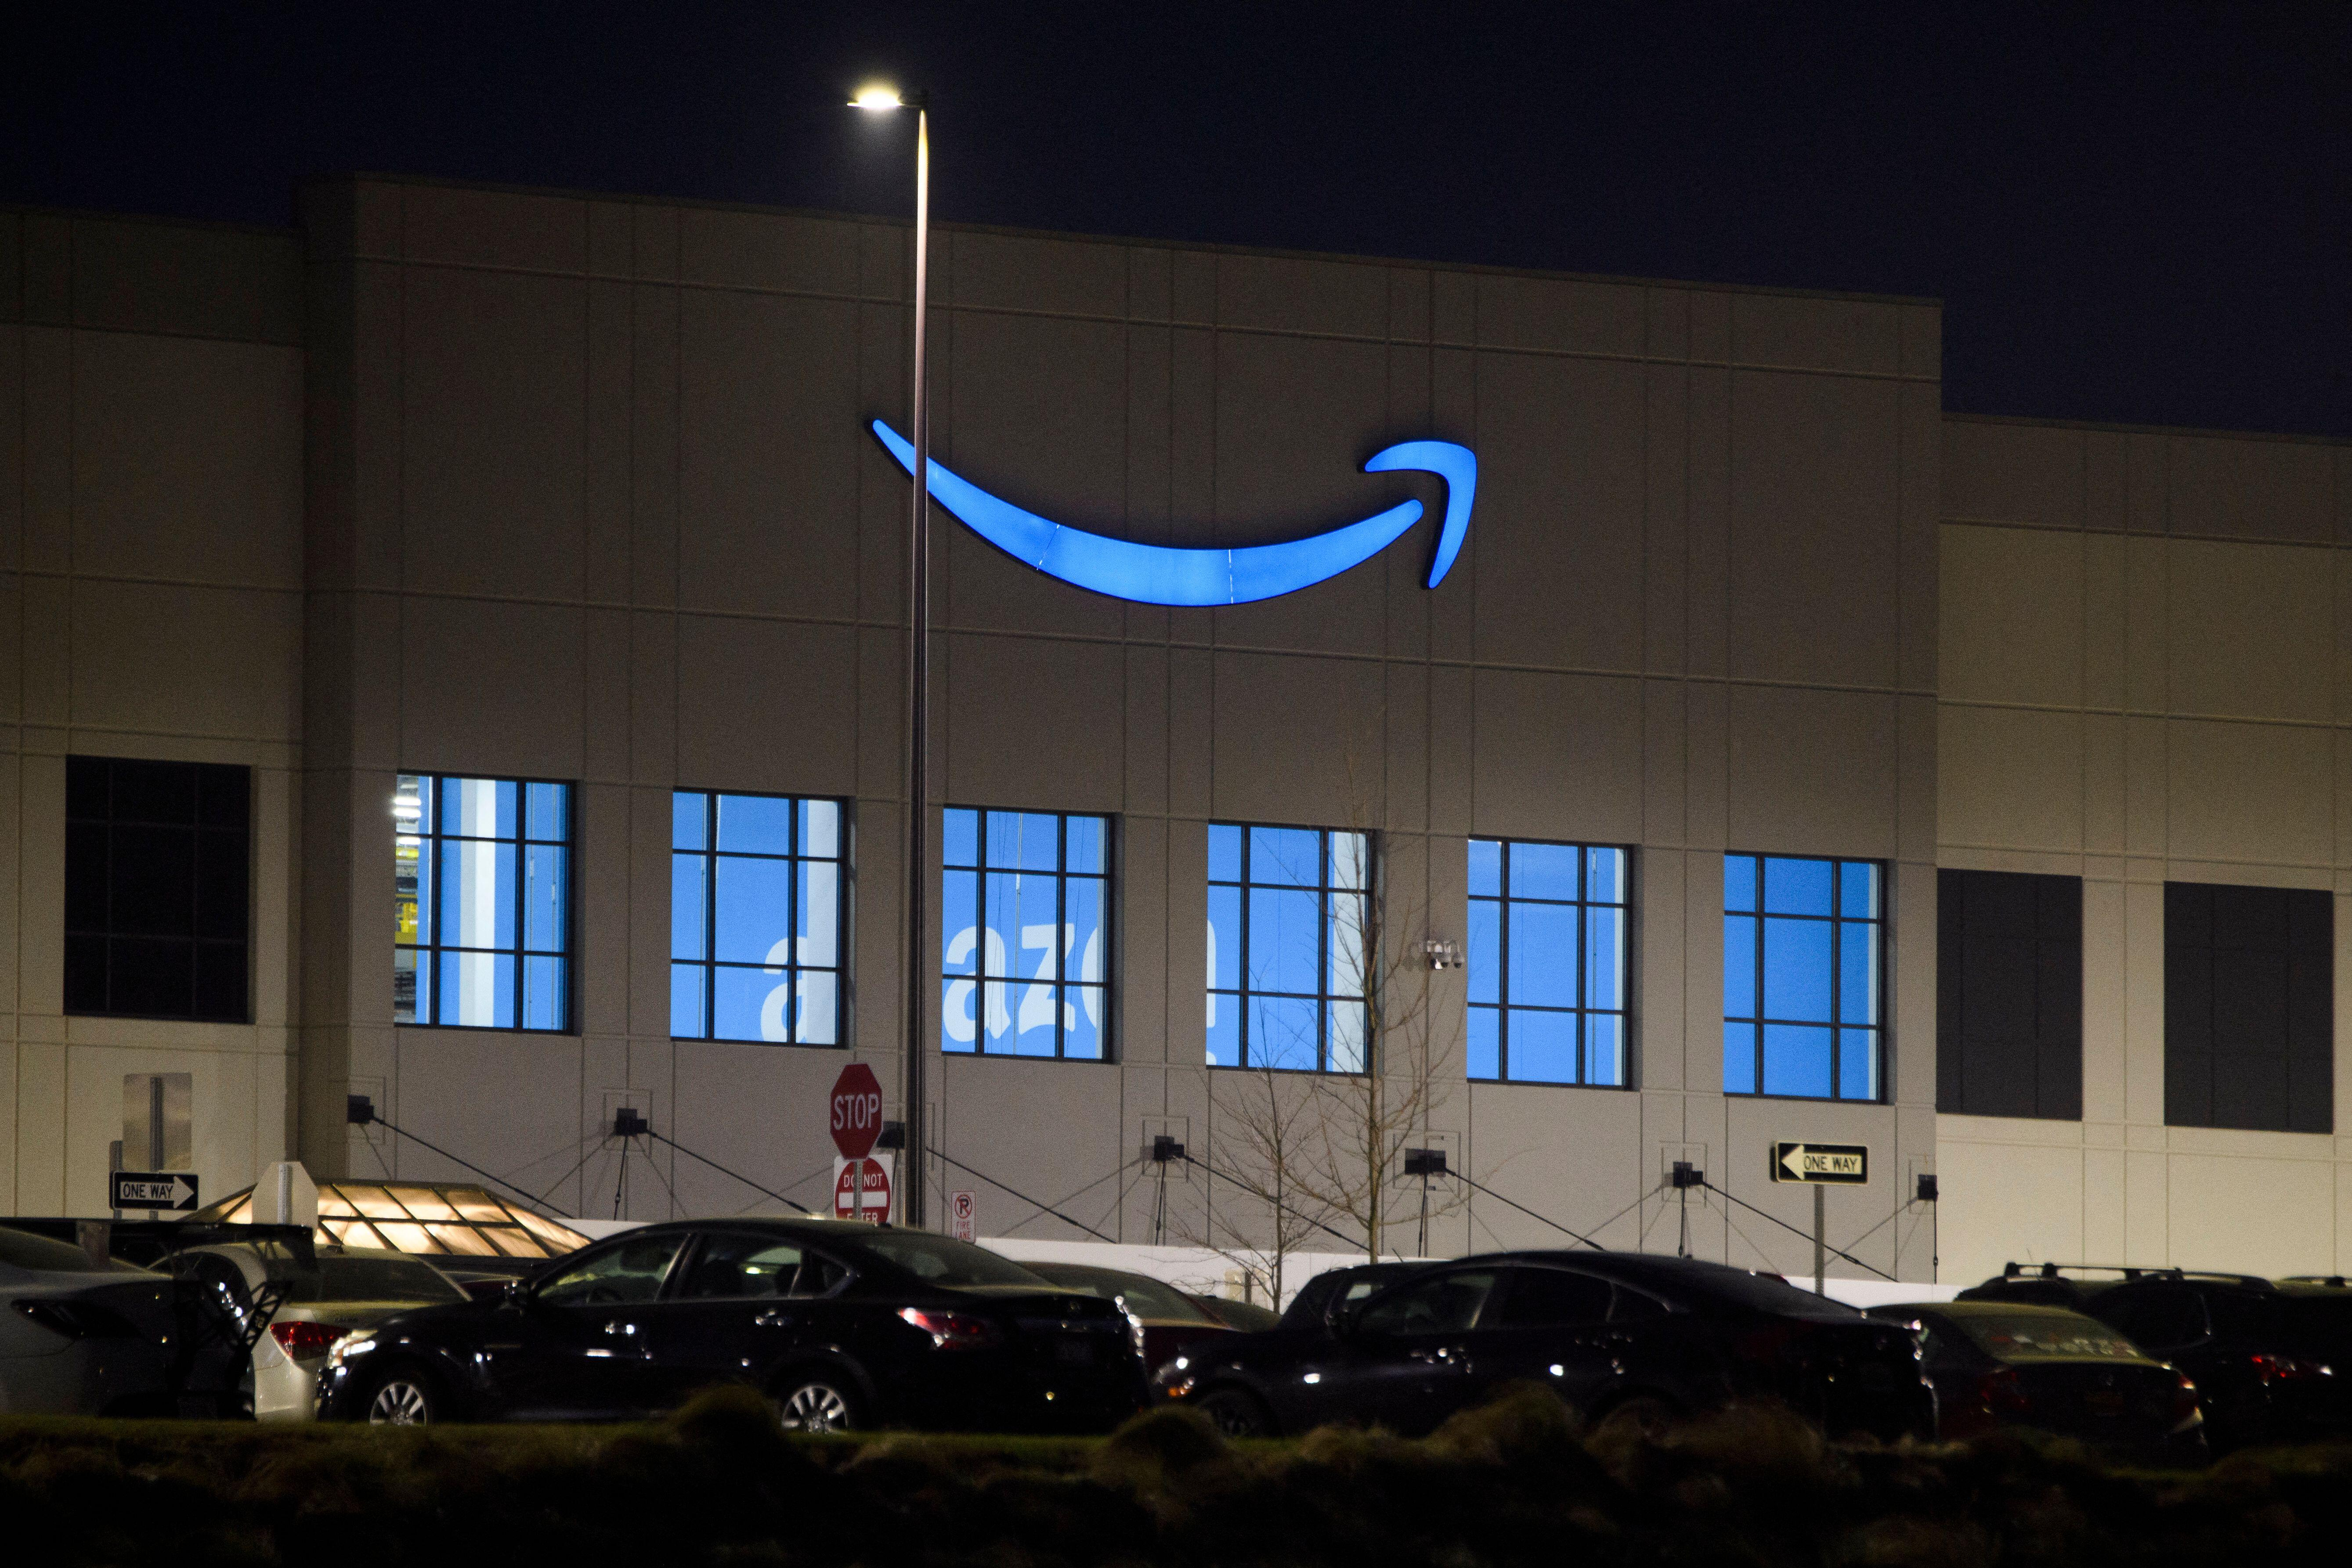 , Amazon early vote tally shows workers poised to overwhelmingly reject union – Source CNET Tech, iBSC Technologies - learning management services, LMS, Wordpress, CMS, Moodle, IT, Email, Web Hosting, Cloud Server,Cloud Computing